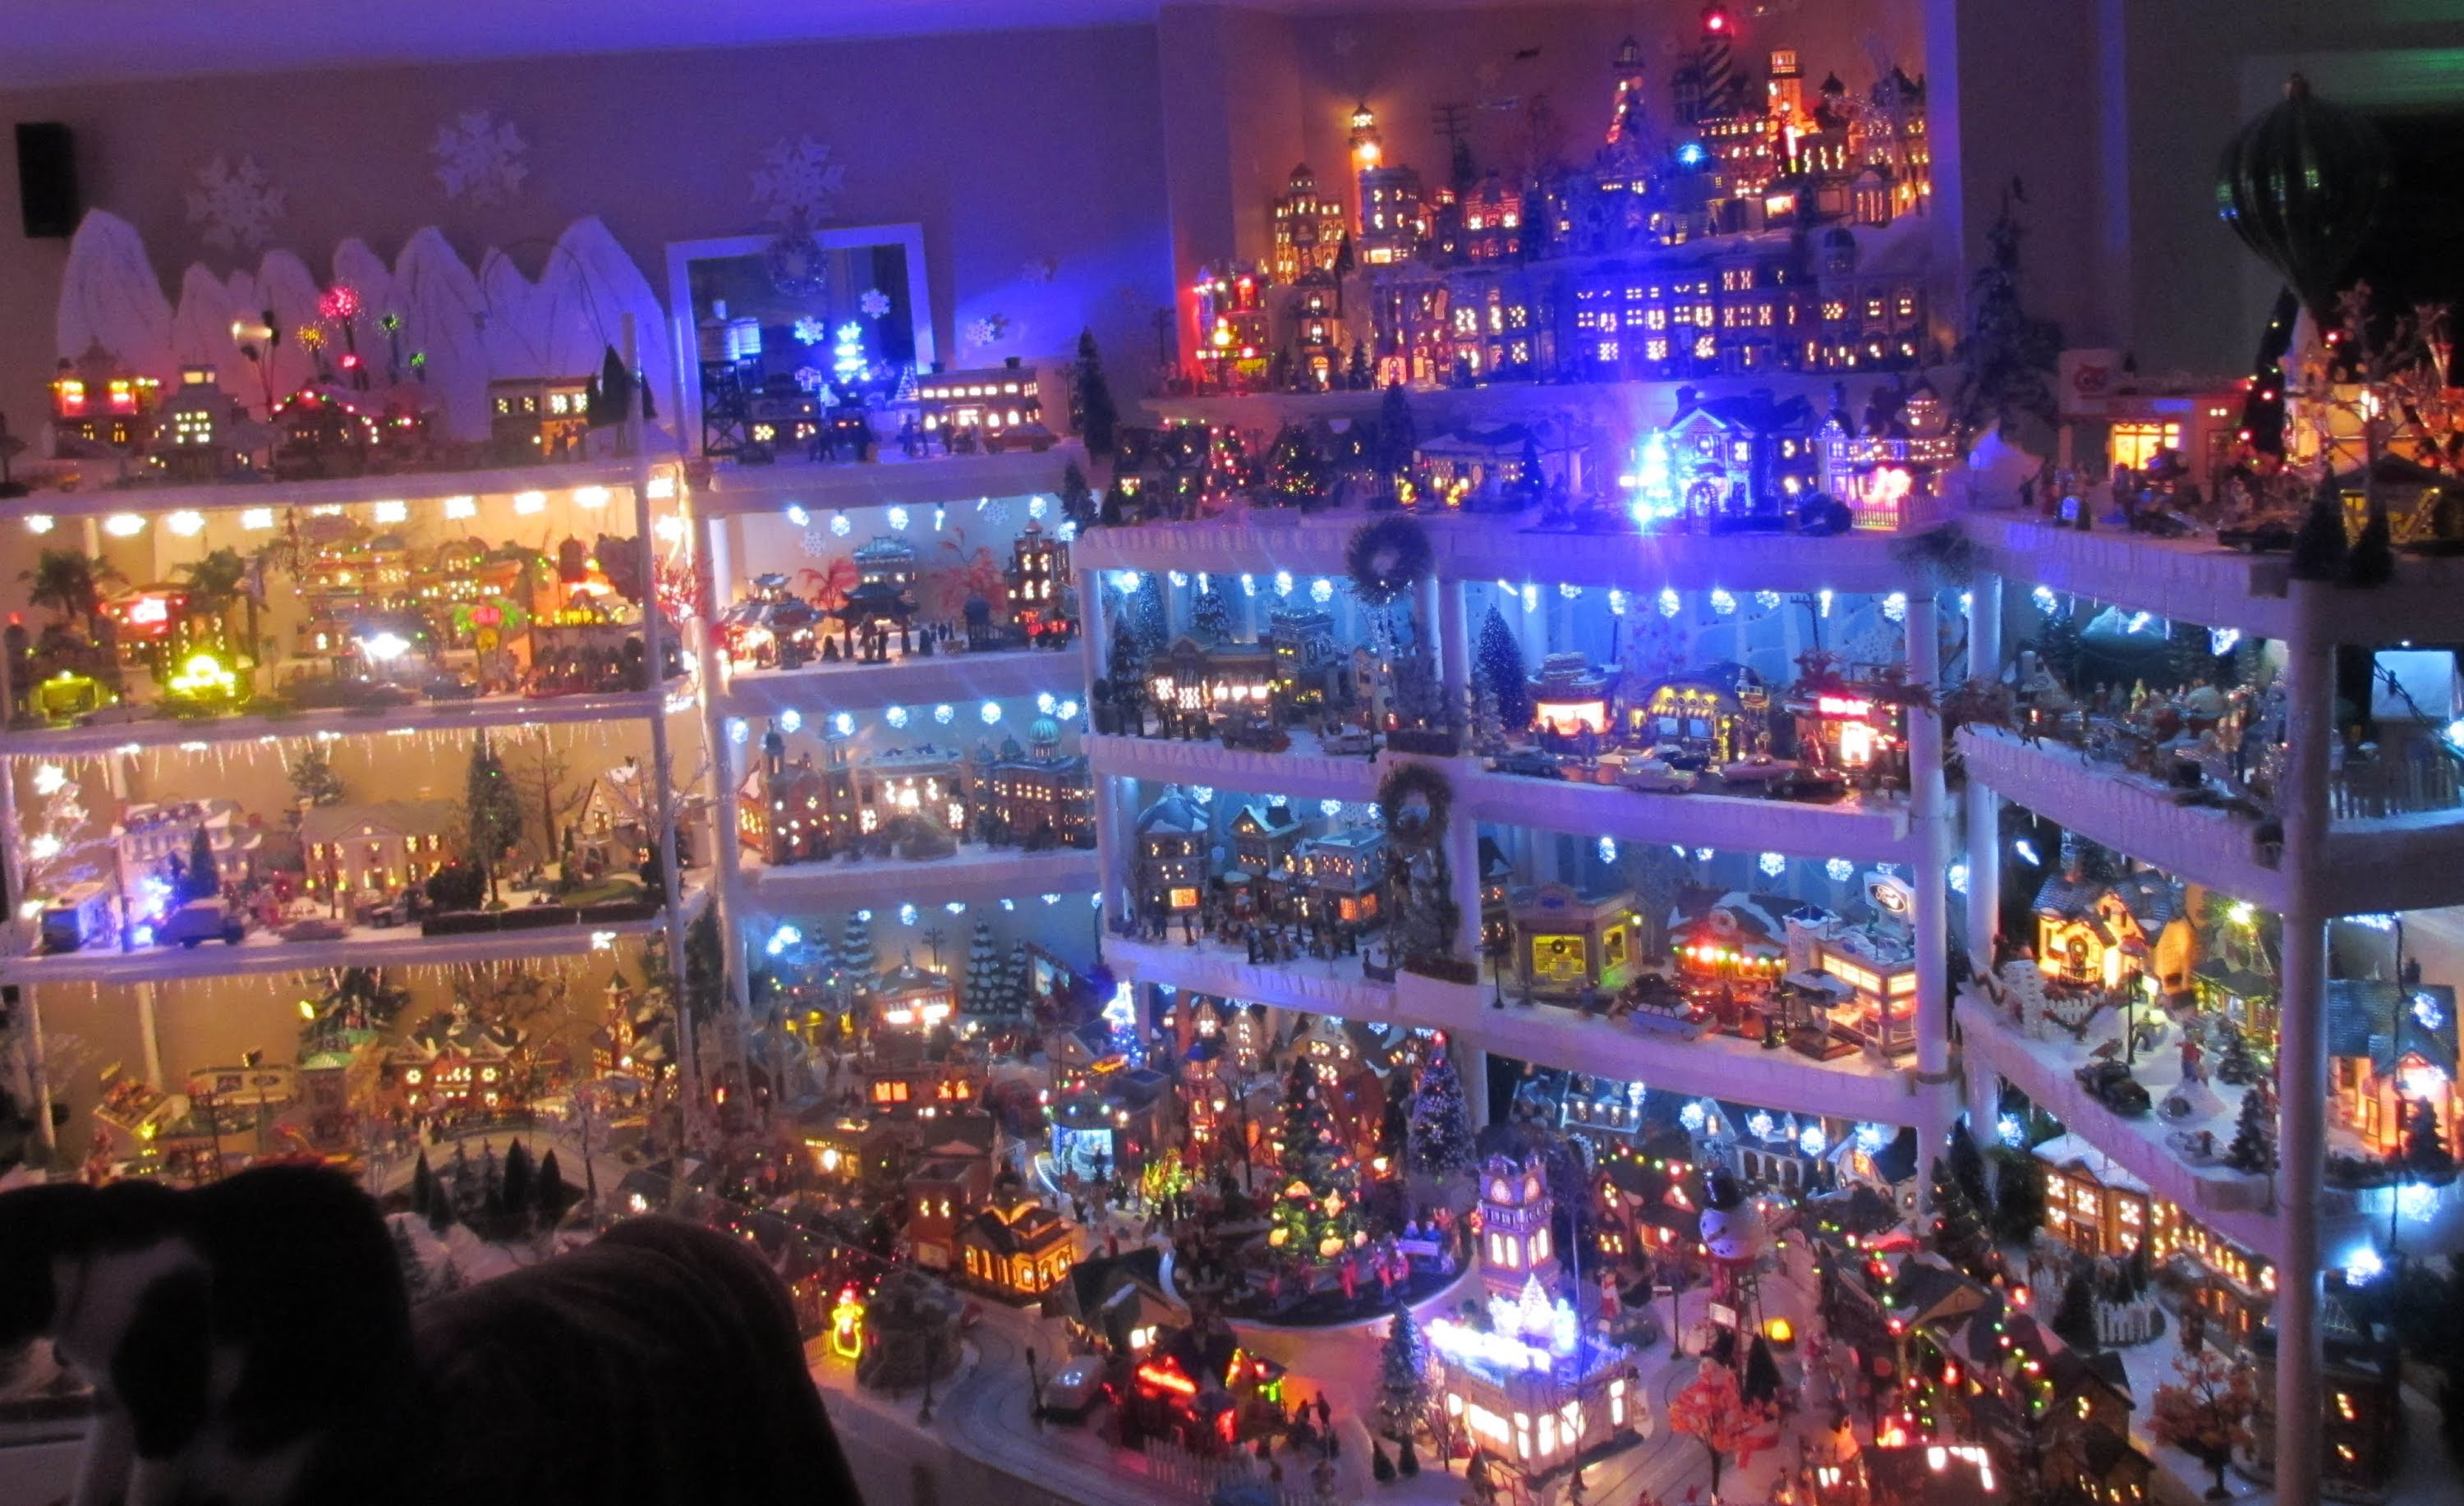 Kathy's 2013 Christmas Village Very Detailed A Must See - YouTube